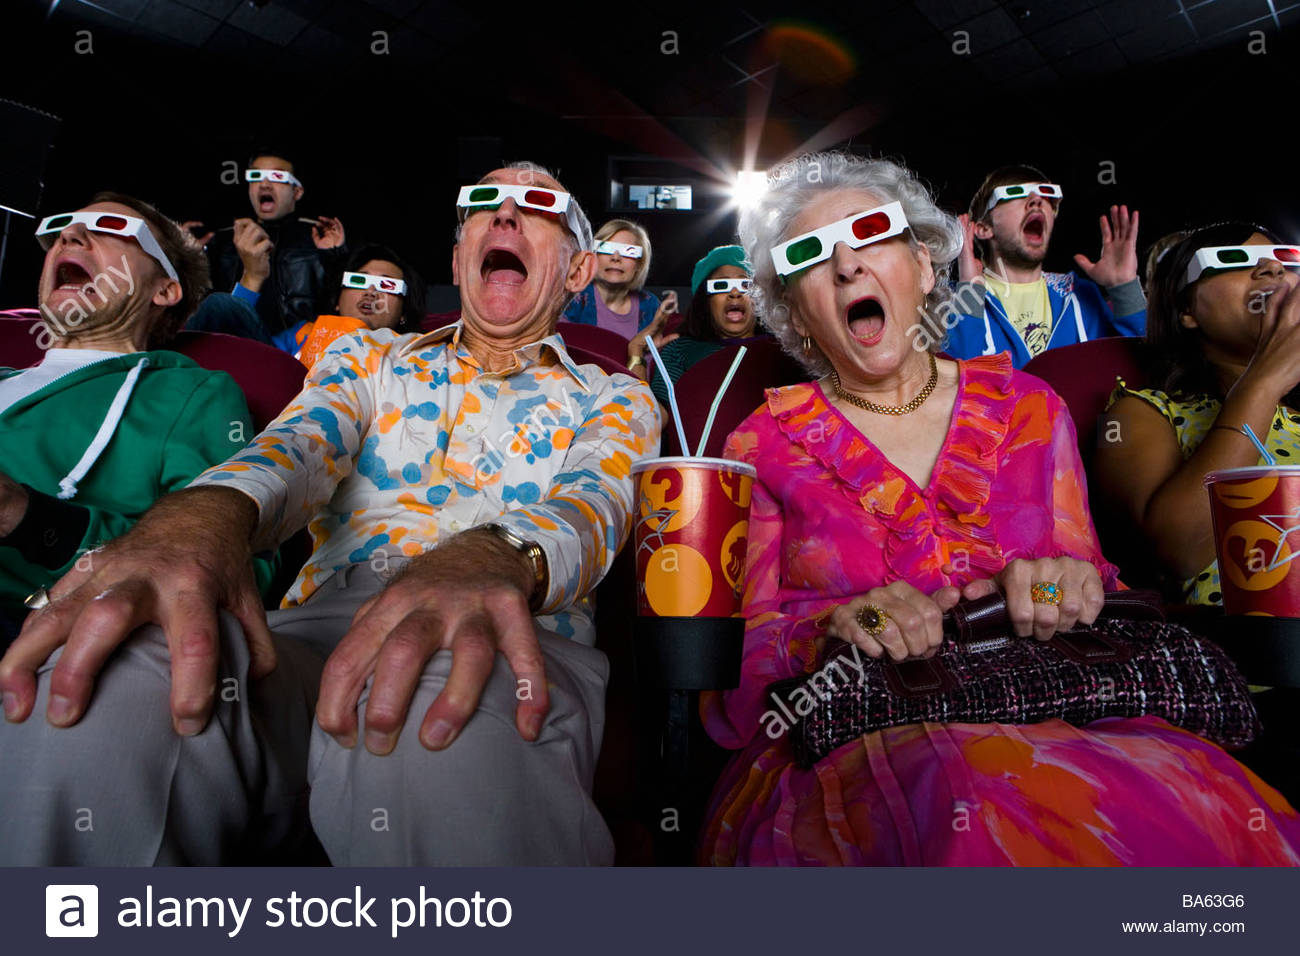 movie-audience-in-3d-glasses-making-face